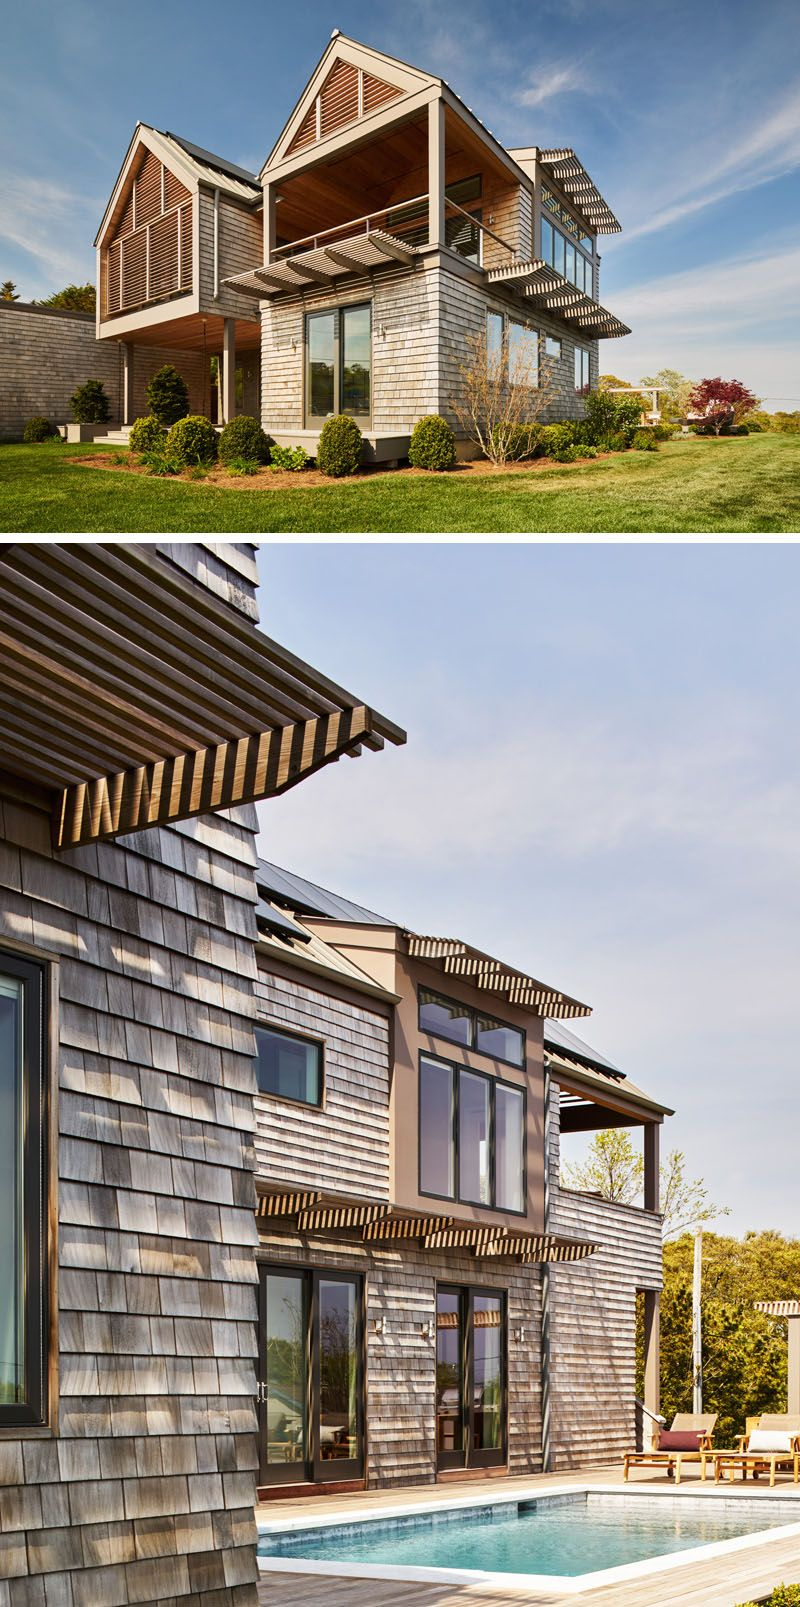 13 Examples Of Modern Houses With Wooden Shingles This New York